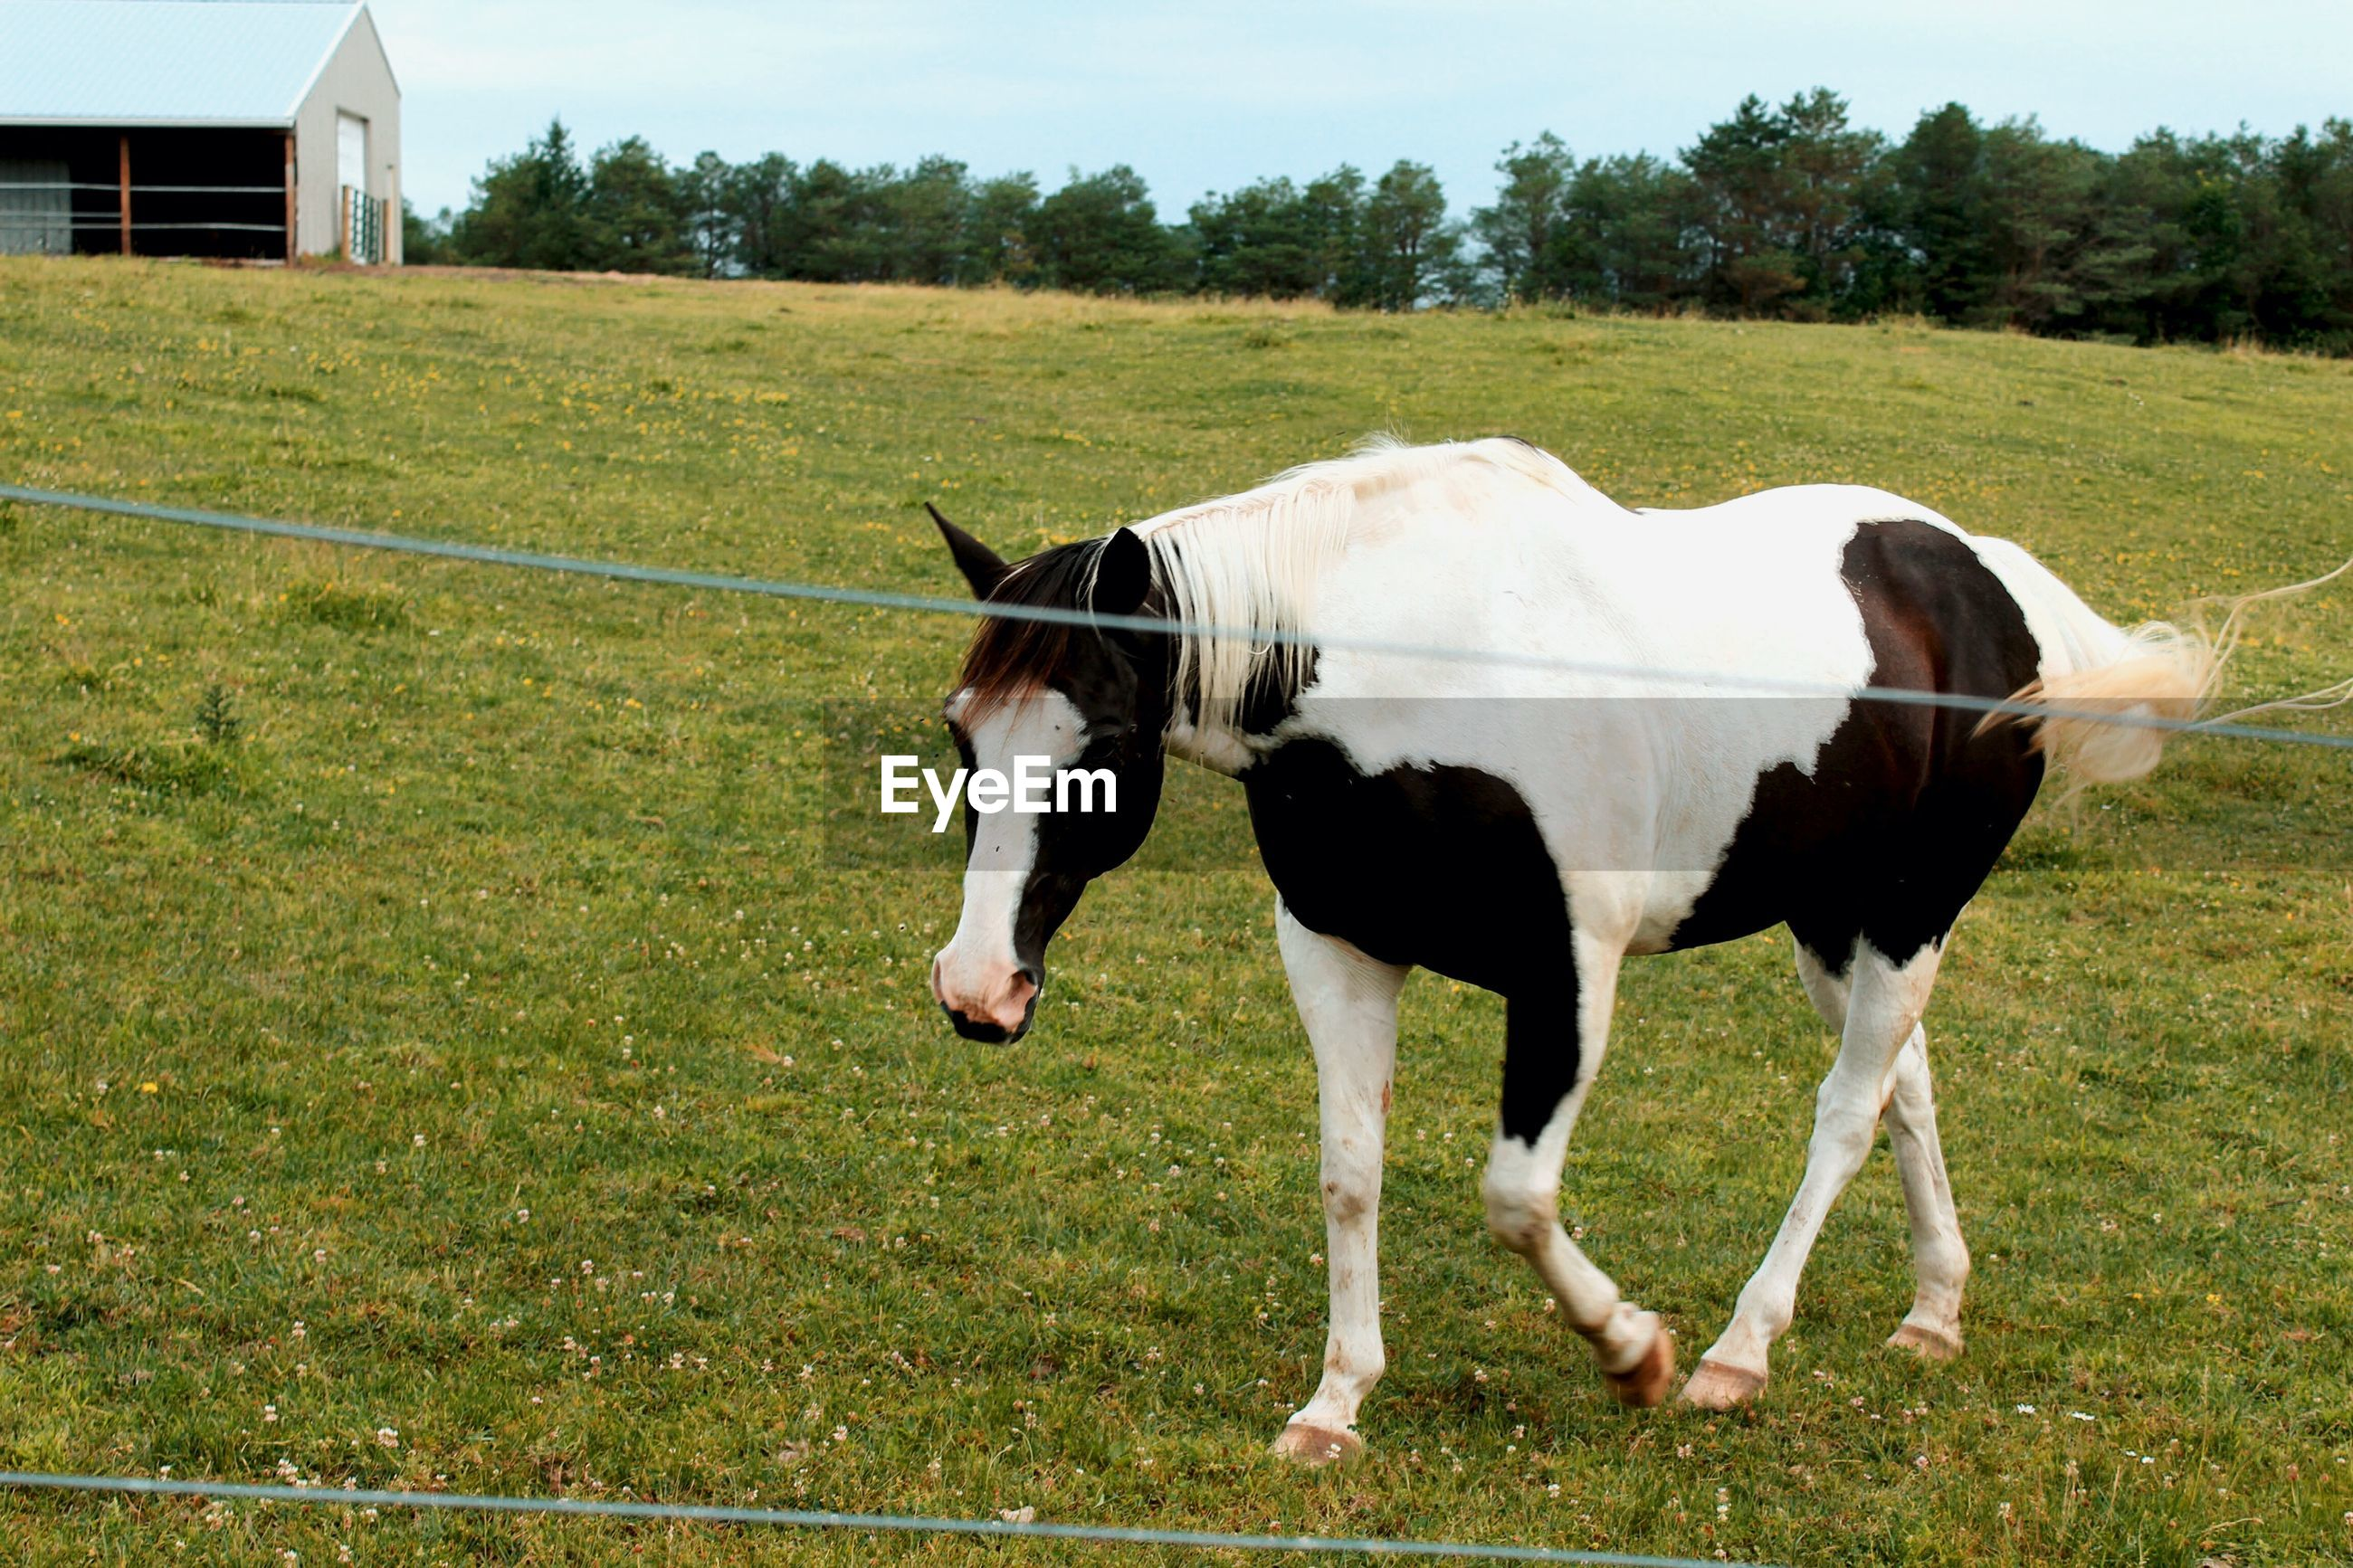 HORSE STANDING IN FARM